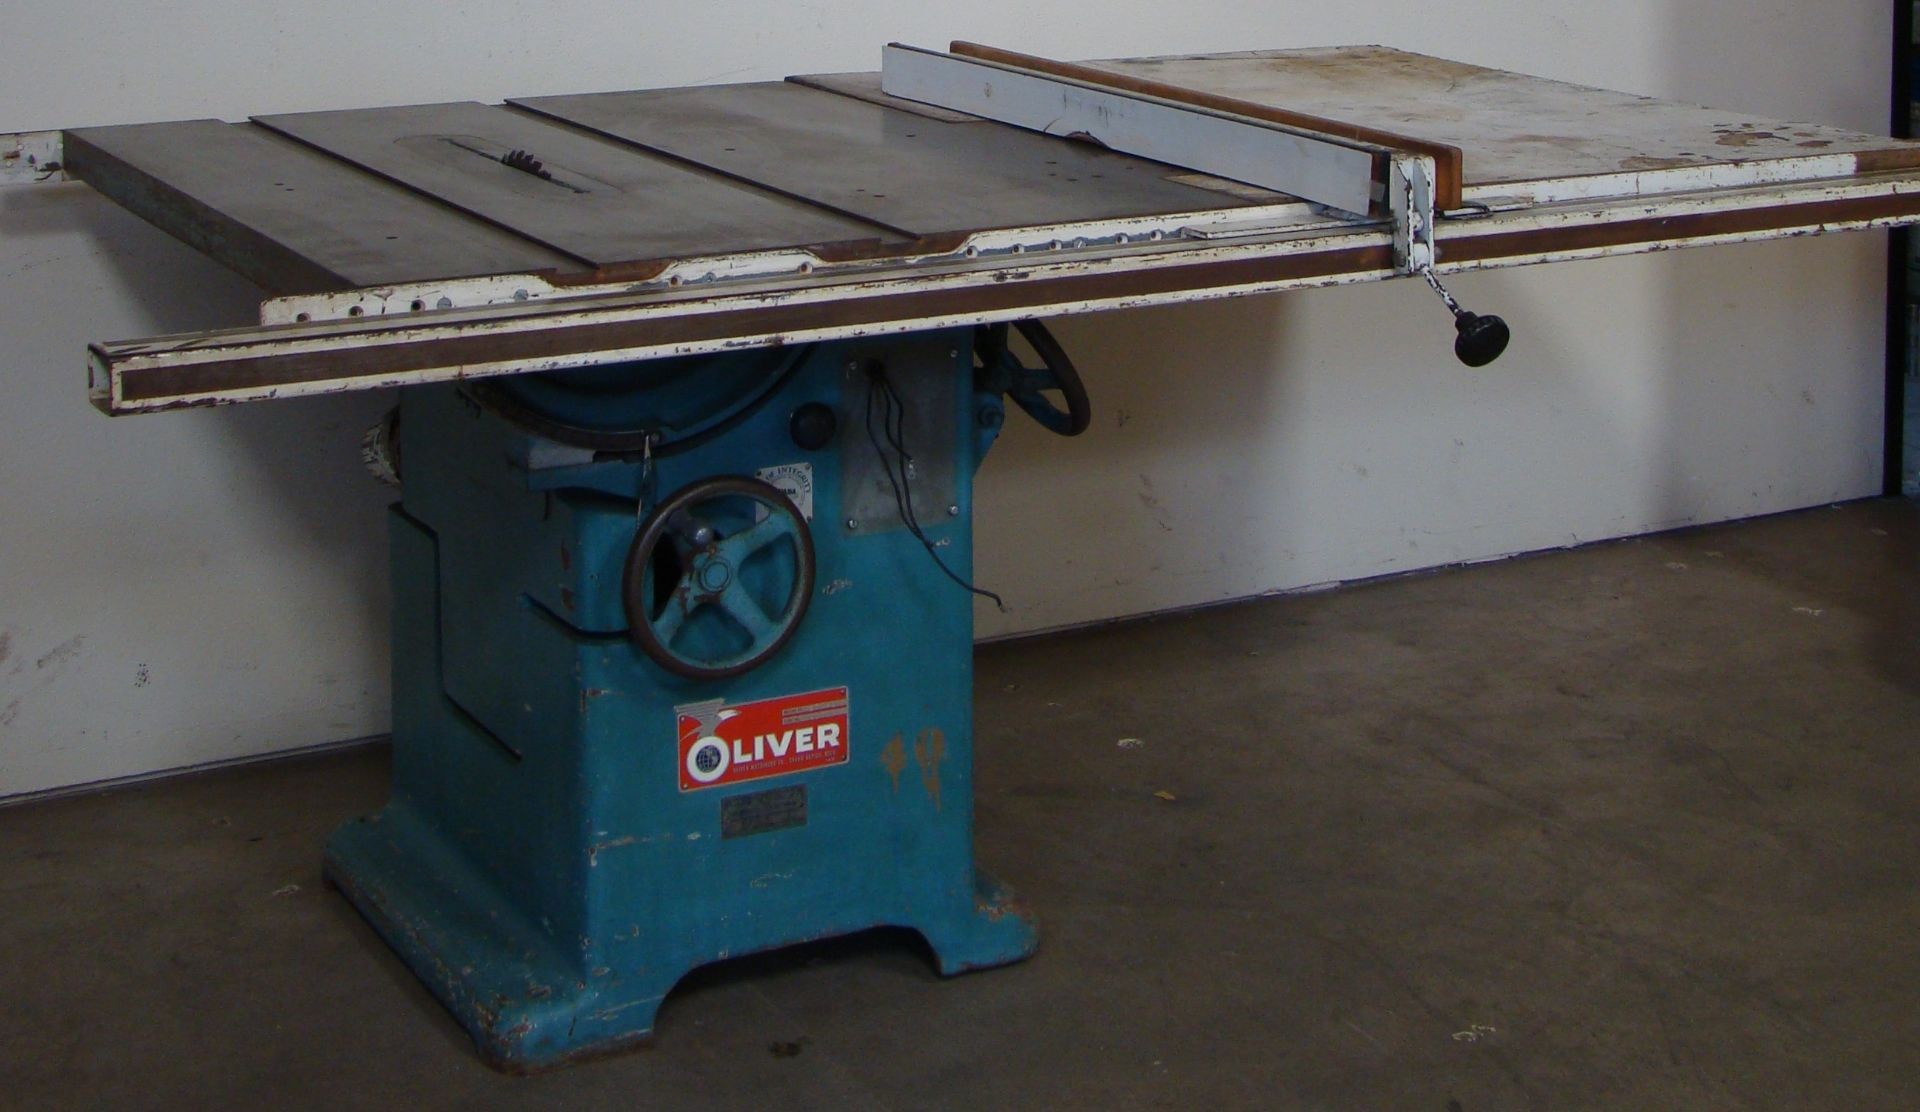 "Oliver 14"" Table Saw, W/ 50"" Biesemeyer Rails Fence 5HP 220 Volts 3 Phase Motor - Image 2 of 7"